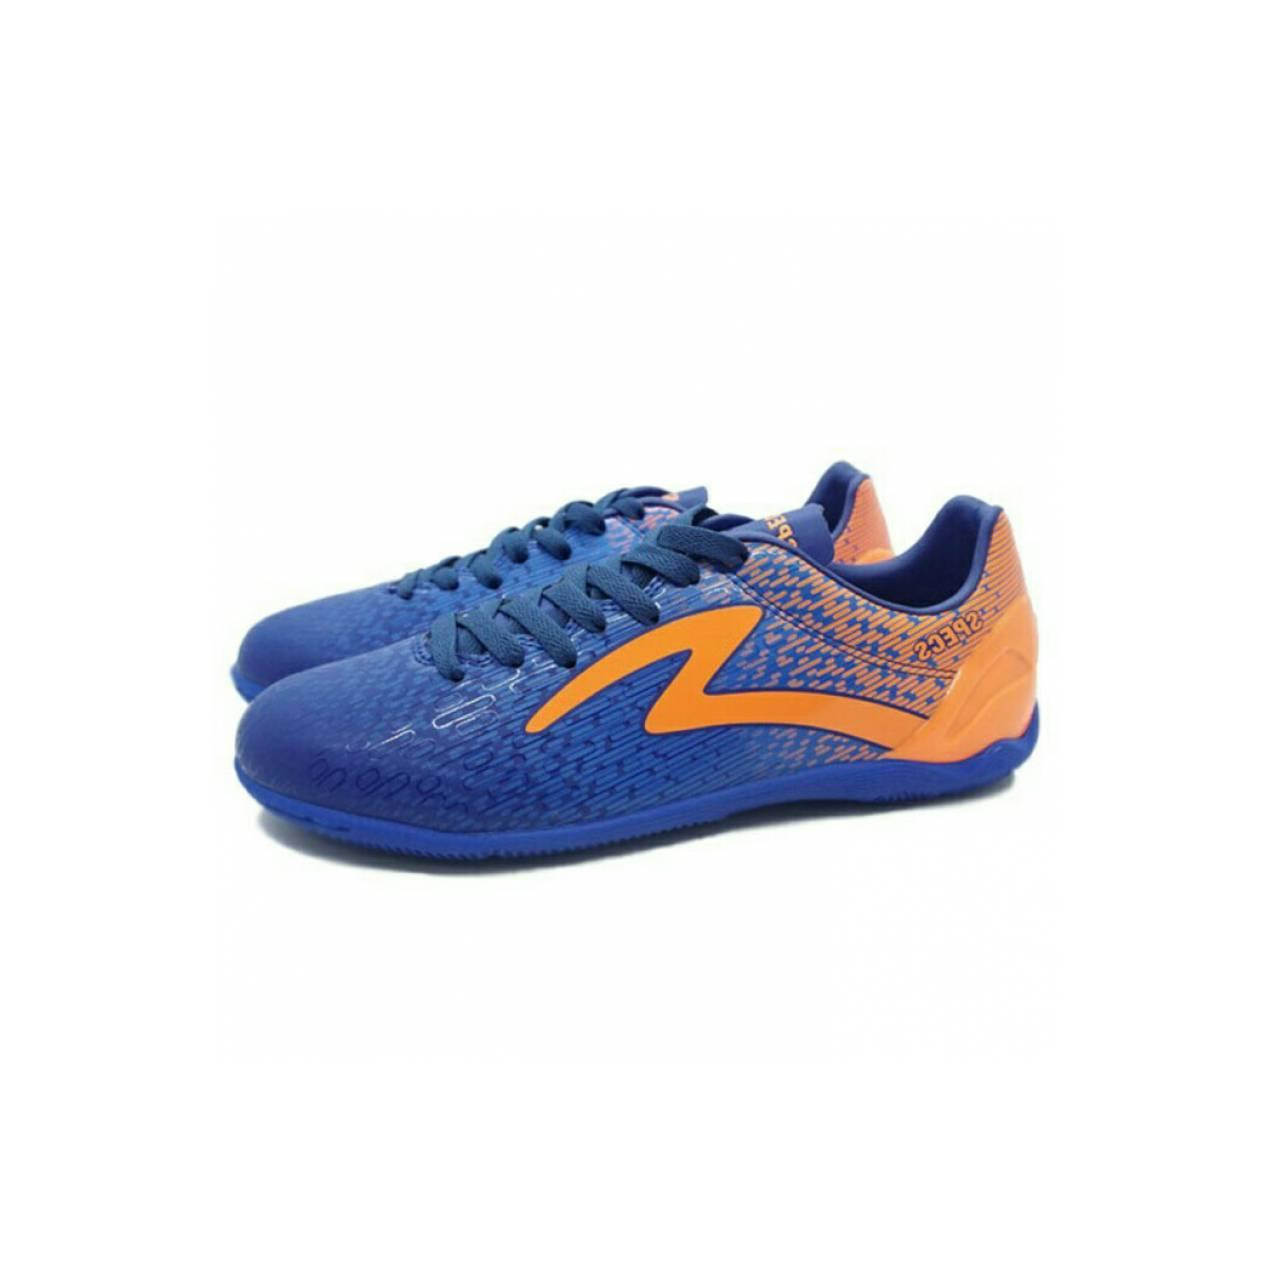 Sepatu Futsal Specs Photon IN (Navy/Tulip Blue/Mango Orange)